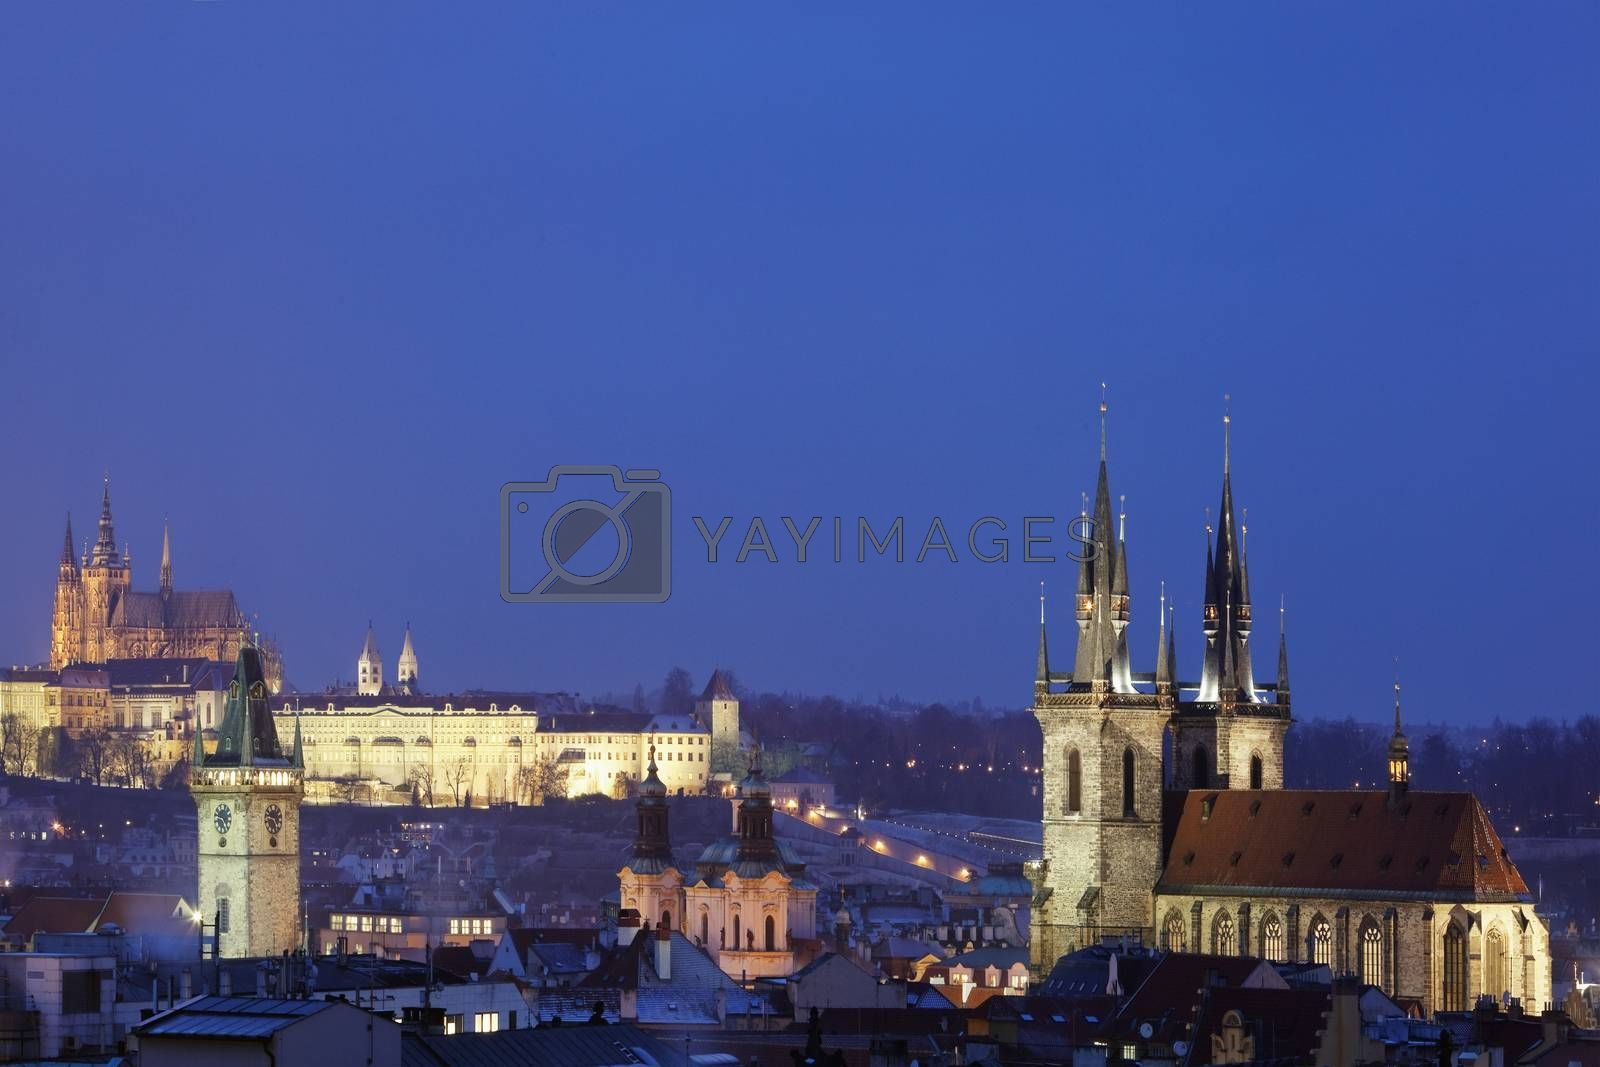 Royalty free image of prague in winter by courtyardpix